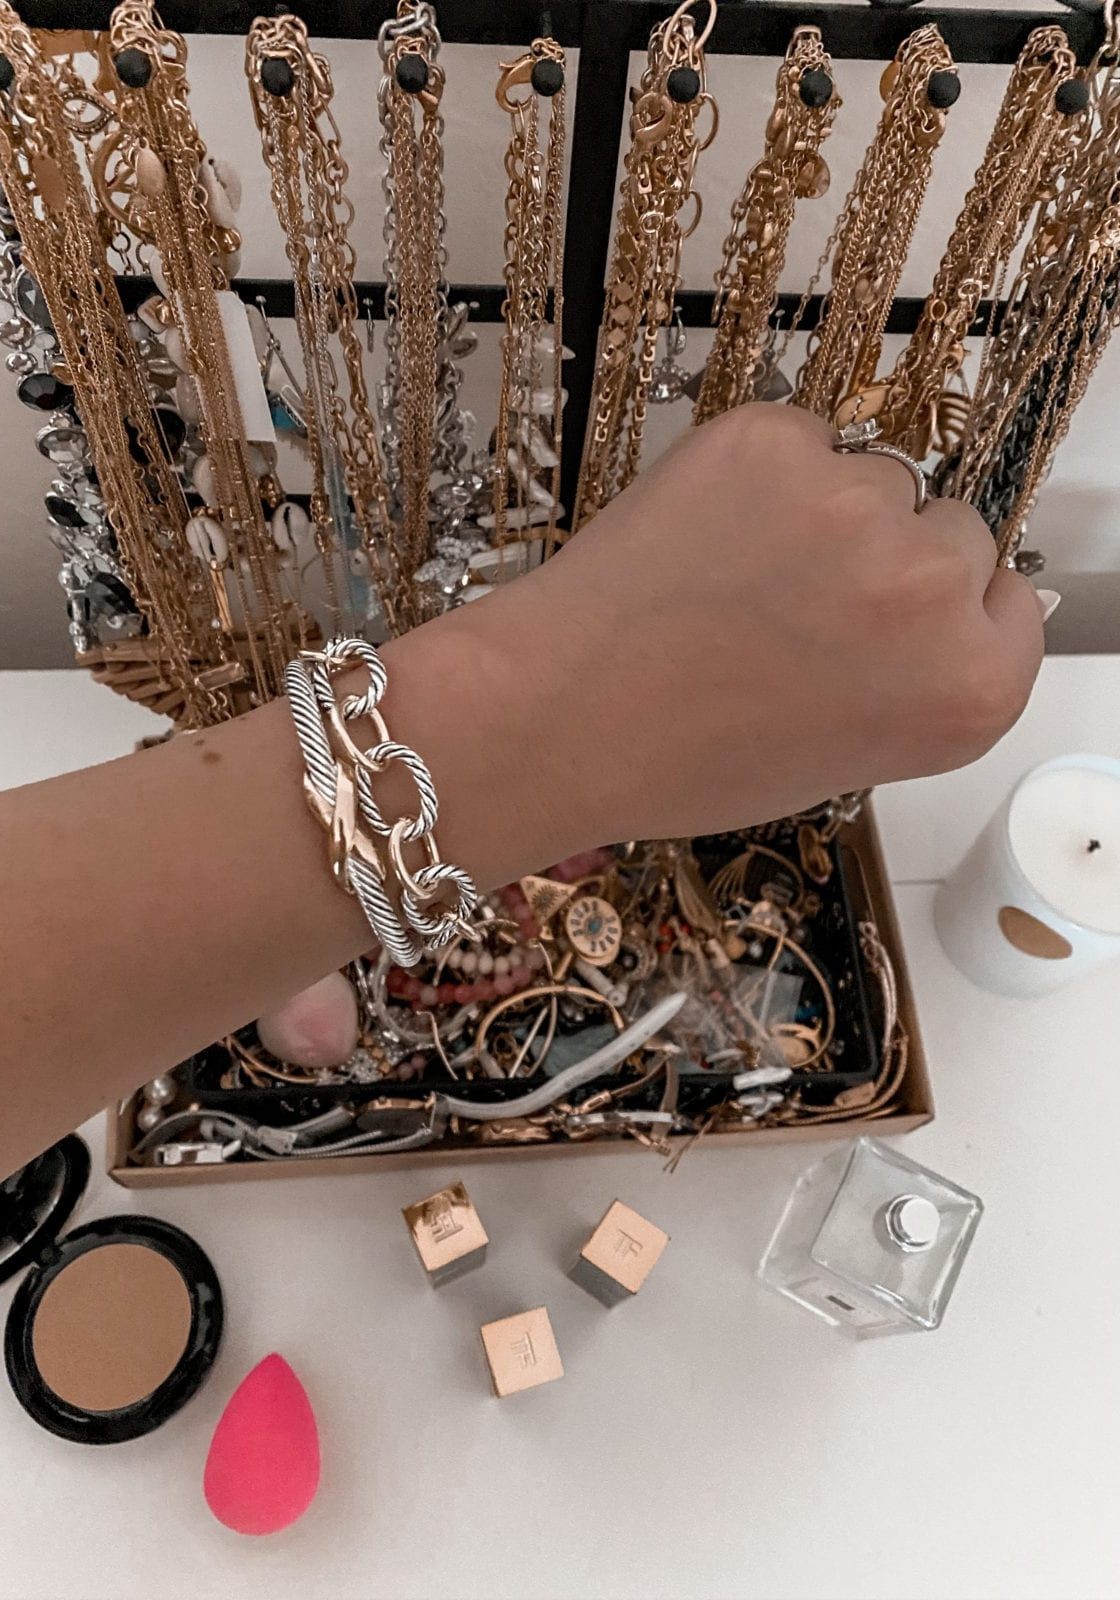 In this image, Adaleta is showing off some of her Amazon Prime designer dupes. She's rocking two of the David Yurman Dupes available on prime for less than $20. She's holding her arm out in front of her jewelry tree on her desk in her beauty room.